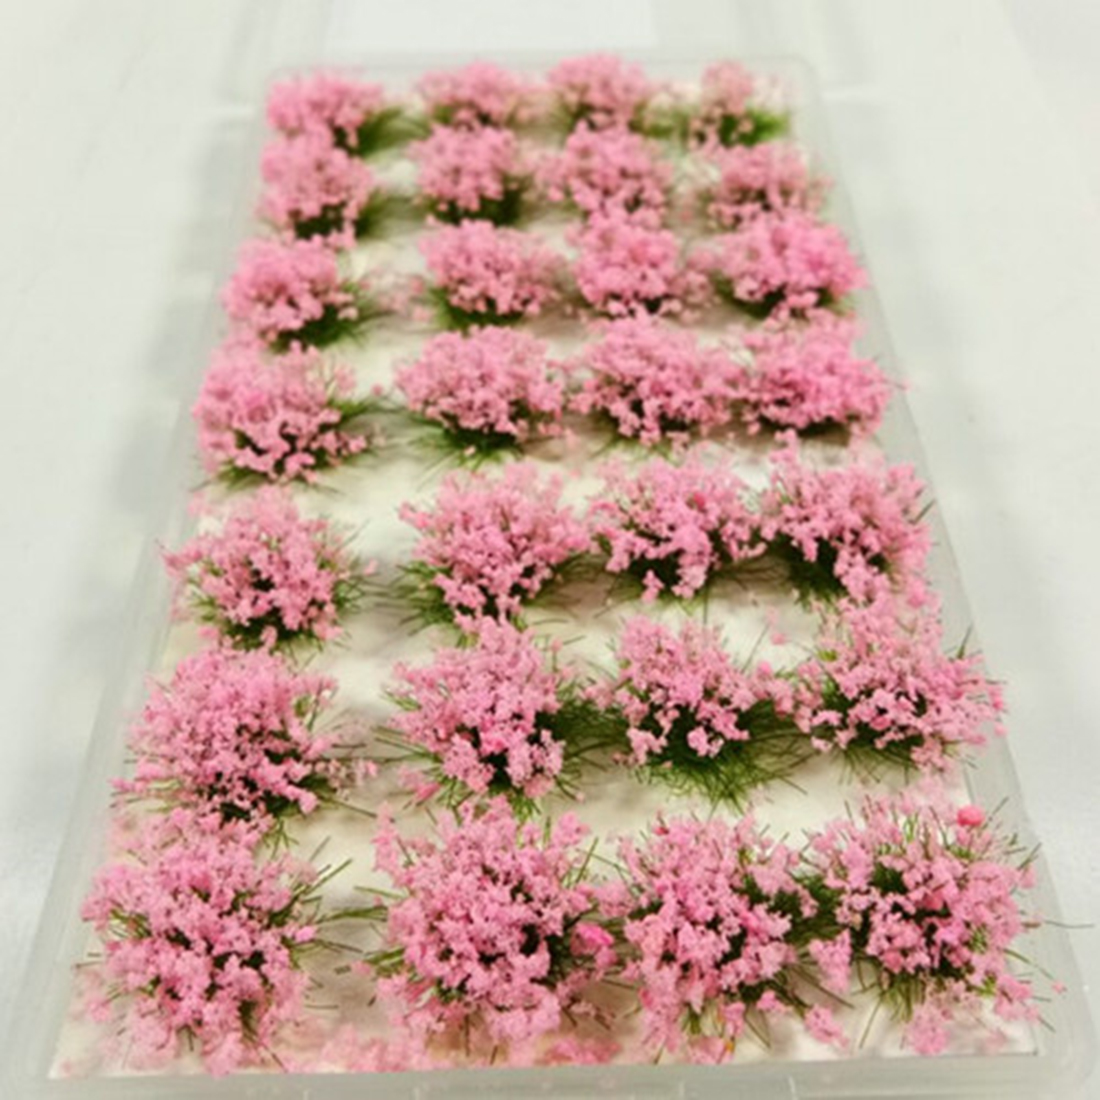 28Pcs Simulation Flower Cluster Flowers Scene Model For 1:35/1:48/1:72/1:87 Scale Sand Table Building Green Leaves Pink Flowers